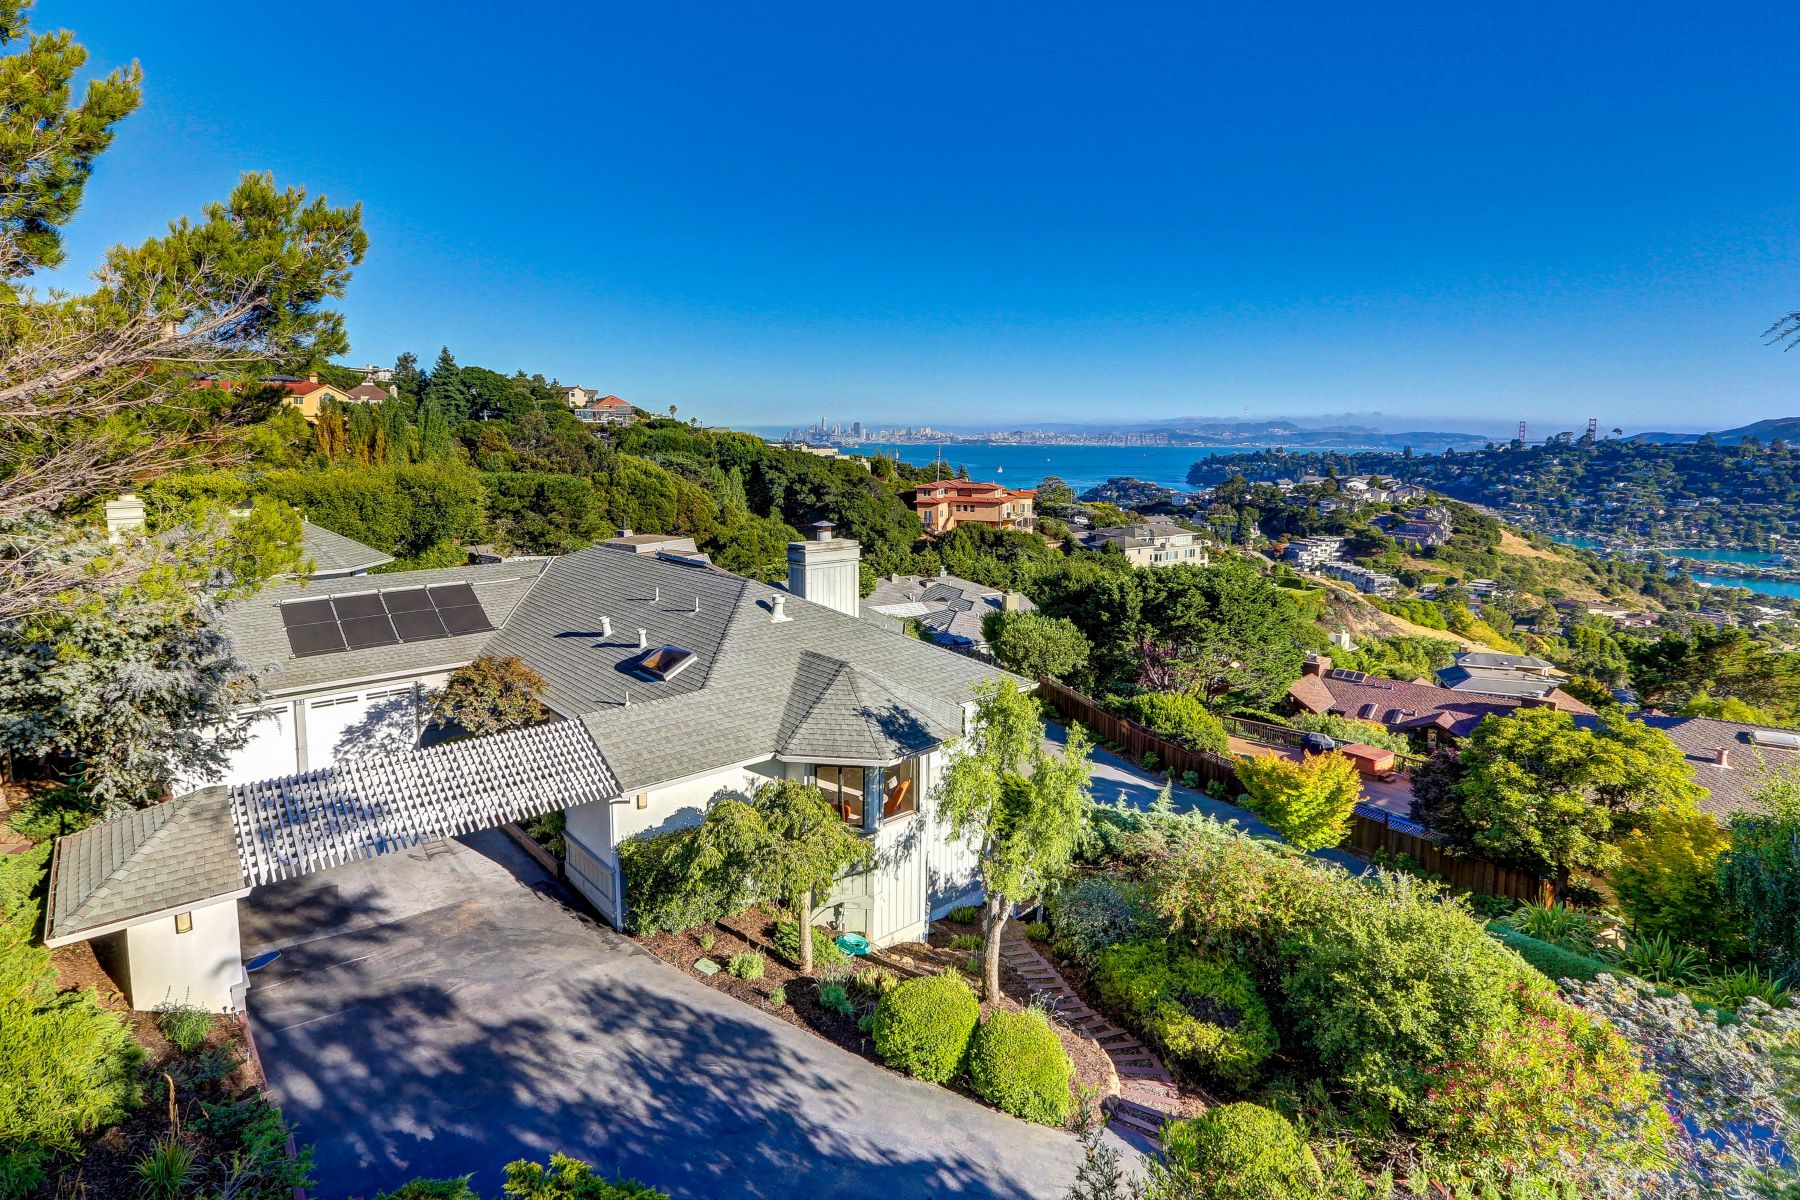 Single Family Home for Sale at Spacious Tiburon Family Home with Spectacular Views 31 Meadow Hill Drive Tiburon, California, 94920 United States